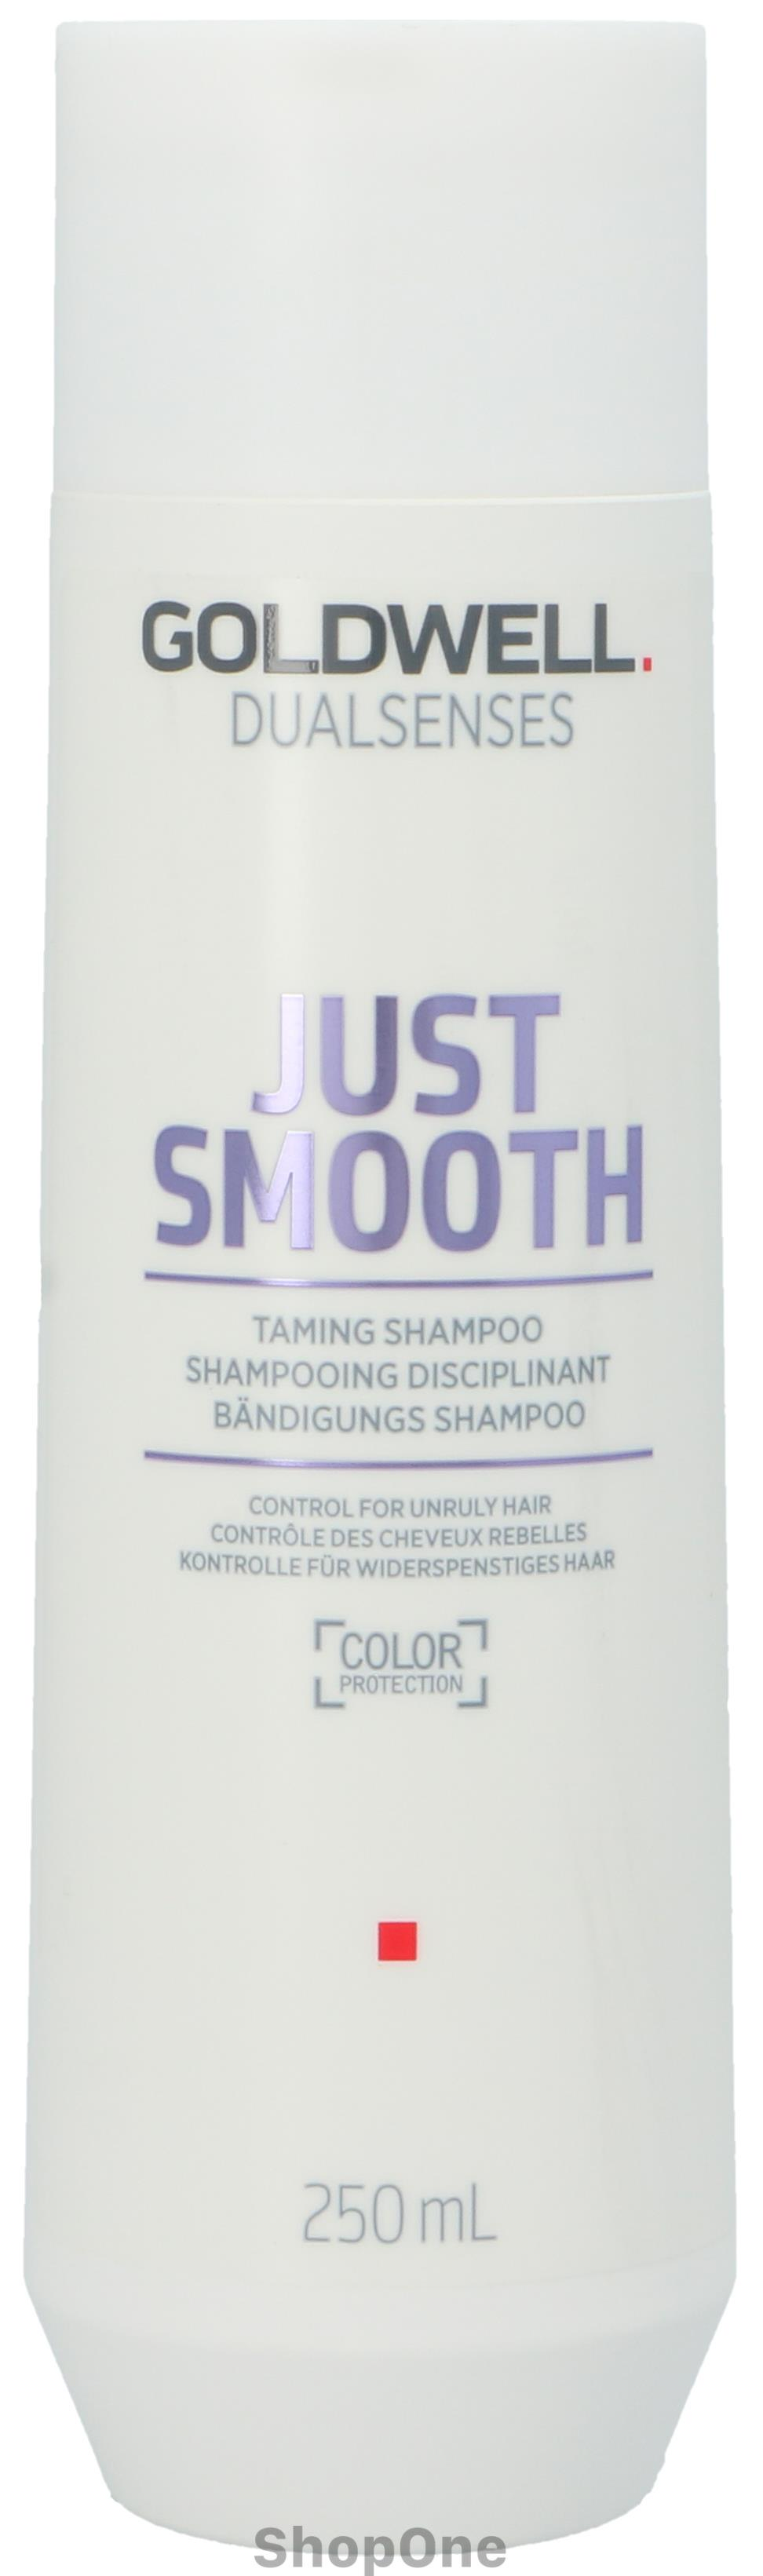 Image of   Dual Senses Just Smooth Shampoo 250 ml fra Goldwell